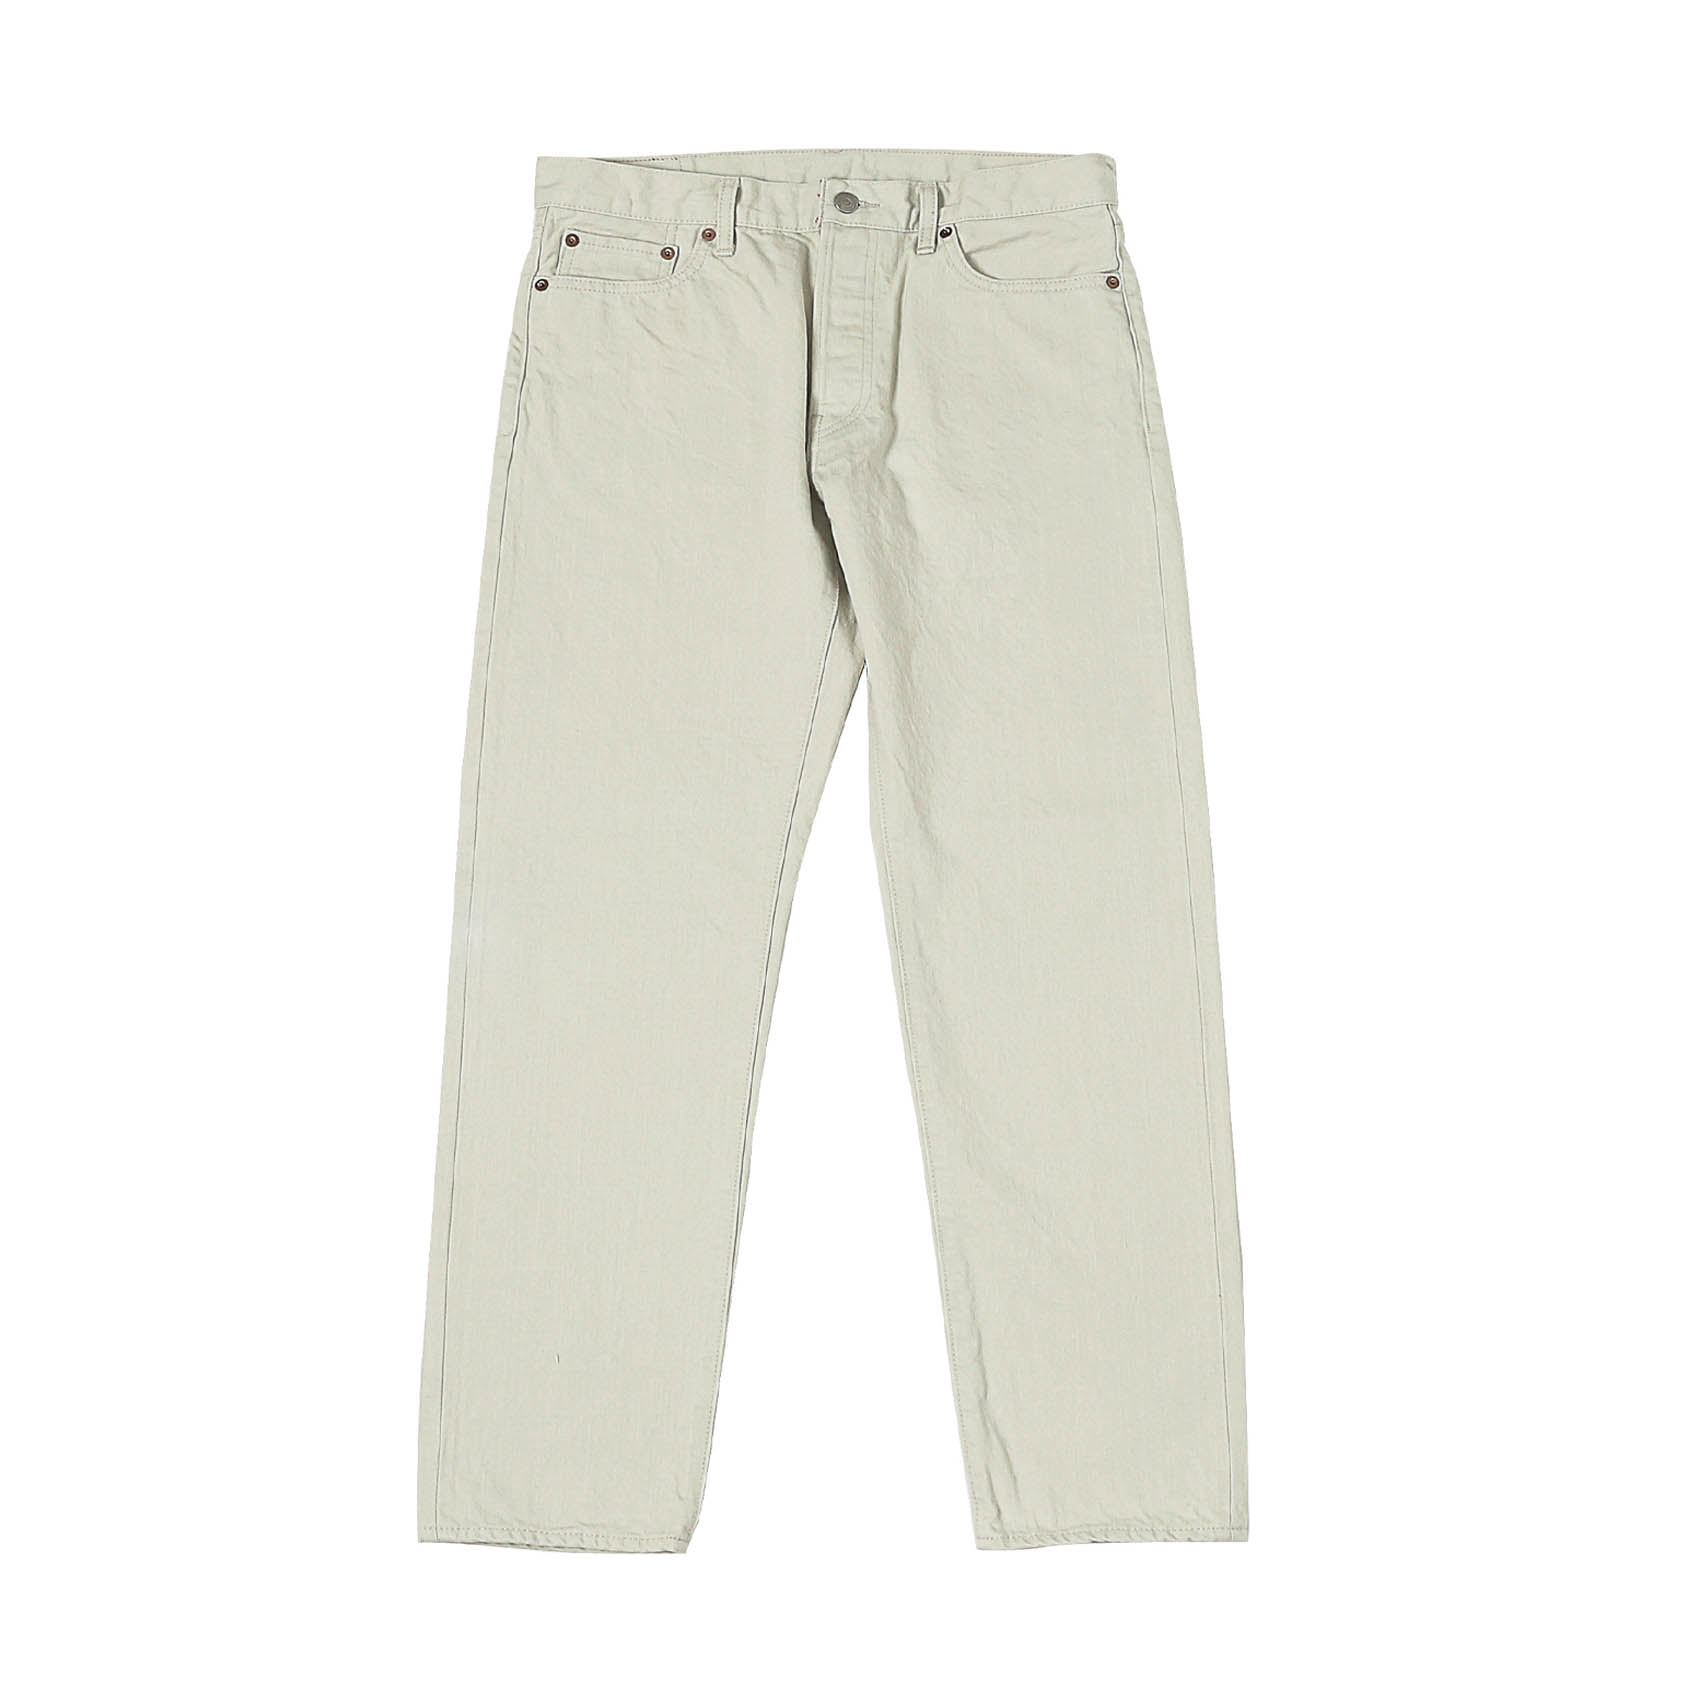 5 POCKET ROLL UP DENIM PANTS - WHITE